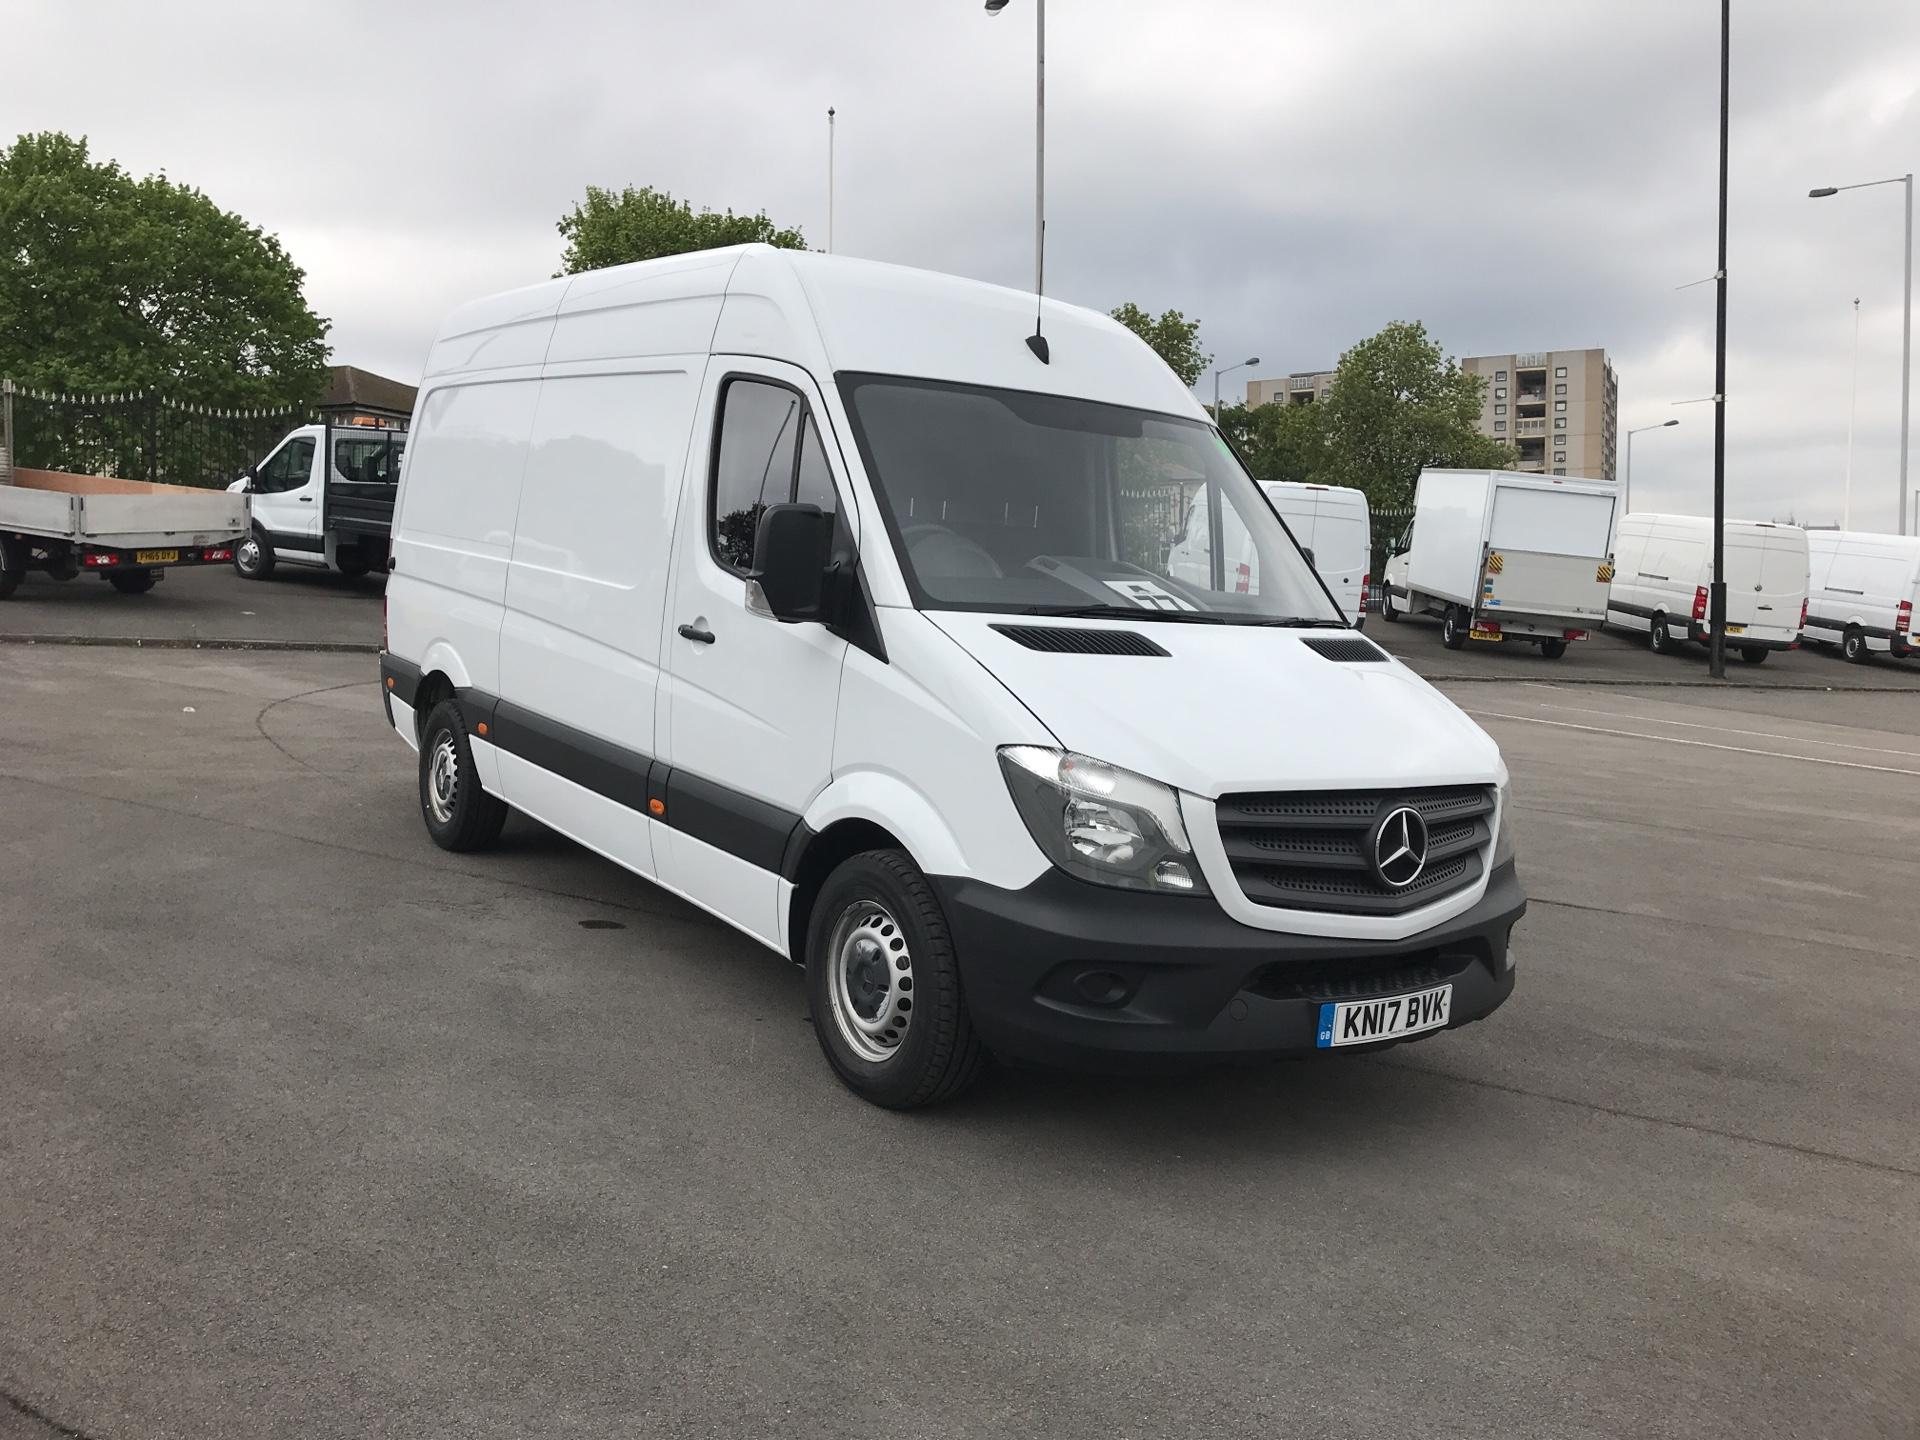 2017 Mercedes-Benz Sprinter 3.5T High Roof Van MWB (KN17BVK) Image 1